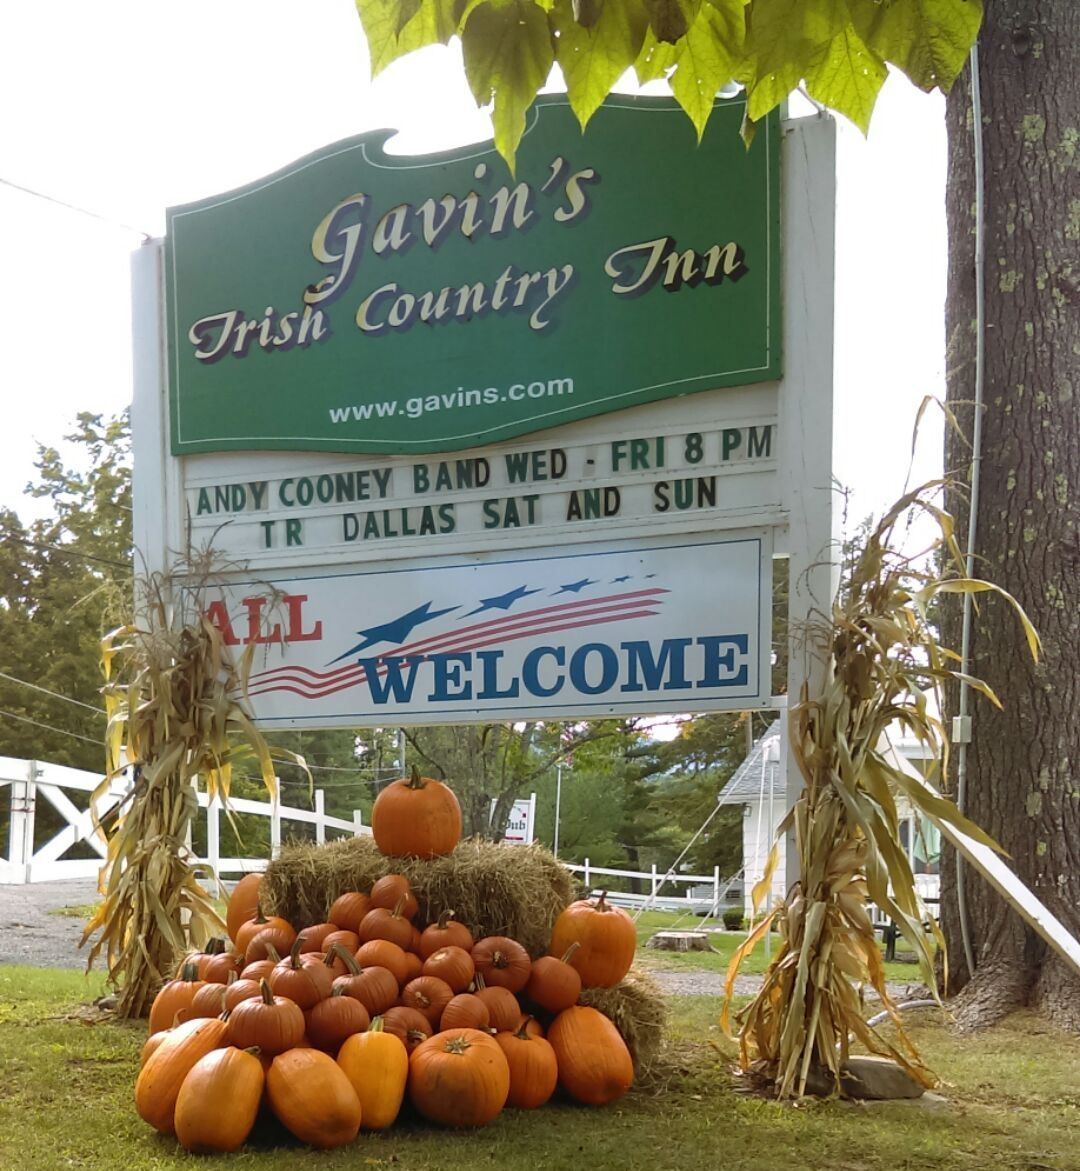 Columbus Day Weekend Getaway; for resv 518-634-2582 @ gavin's irish country inn